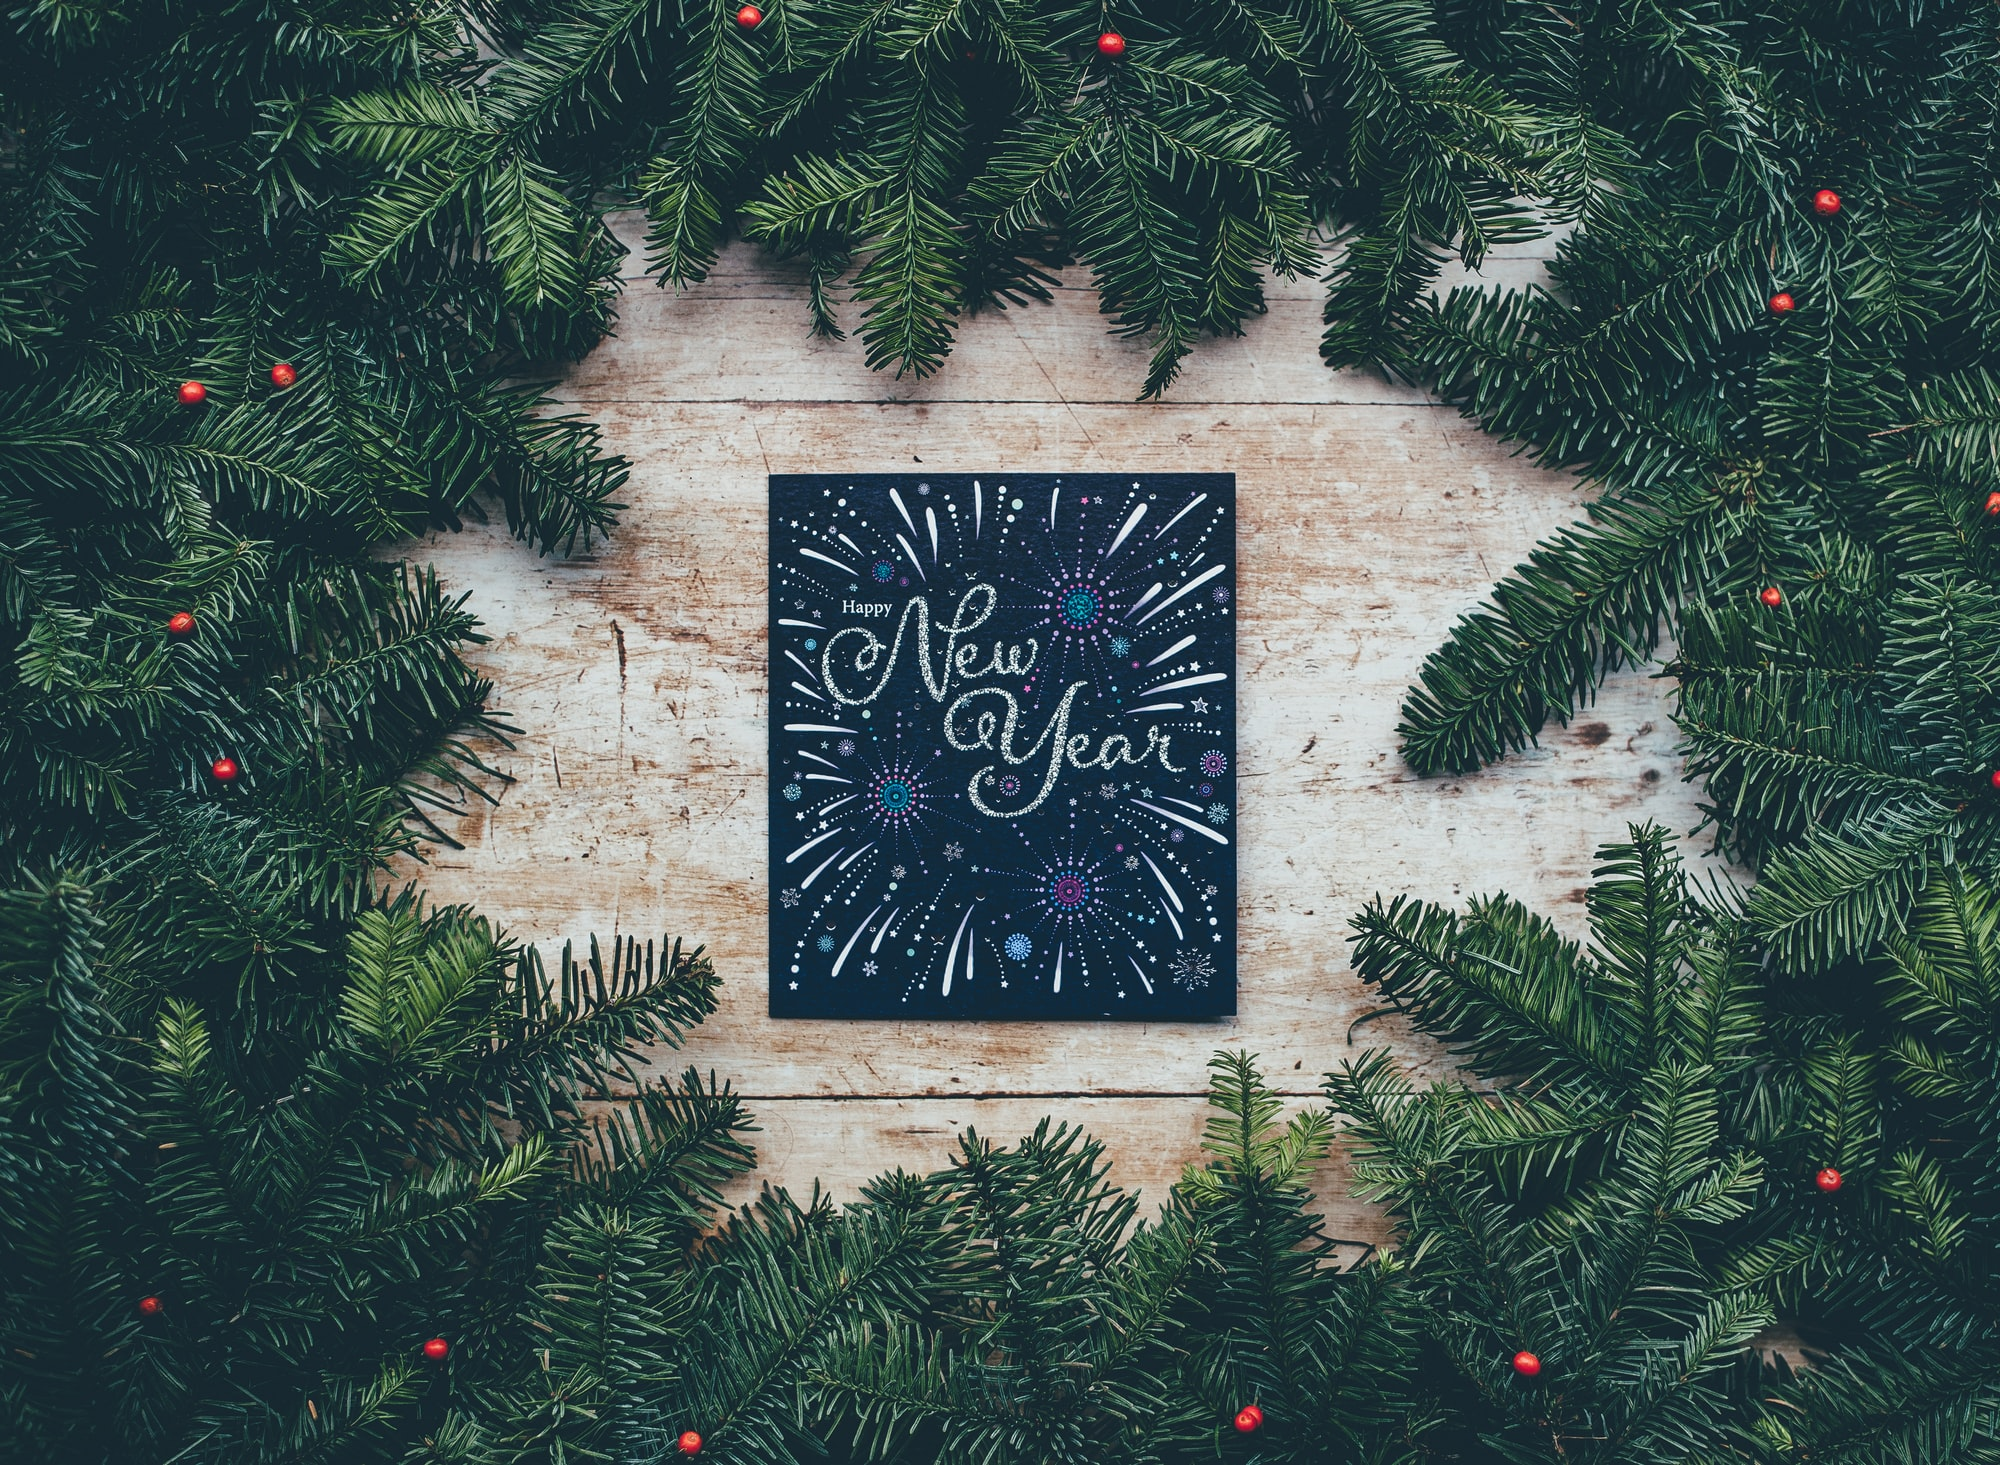 """A handpainted sign reads """"Happy New Year"""" and is surrounded by pine tree branches."""